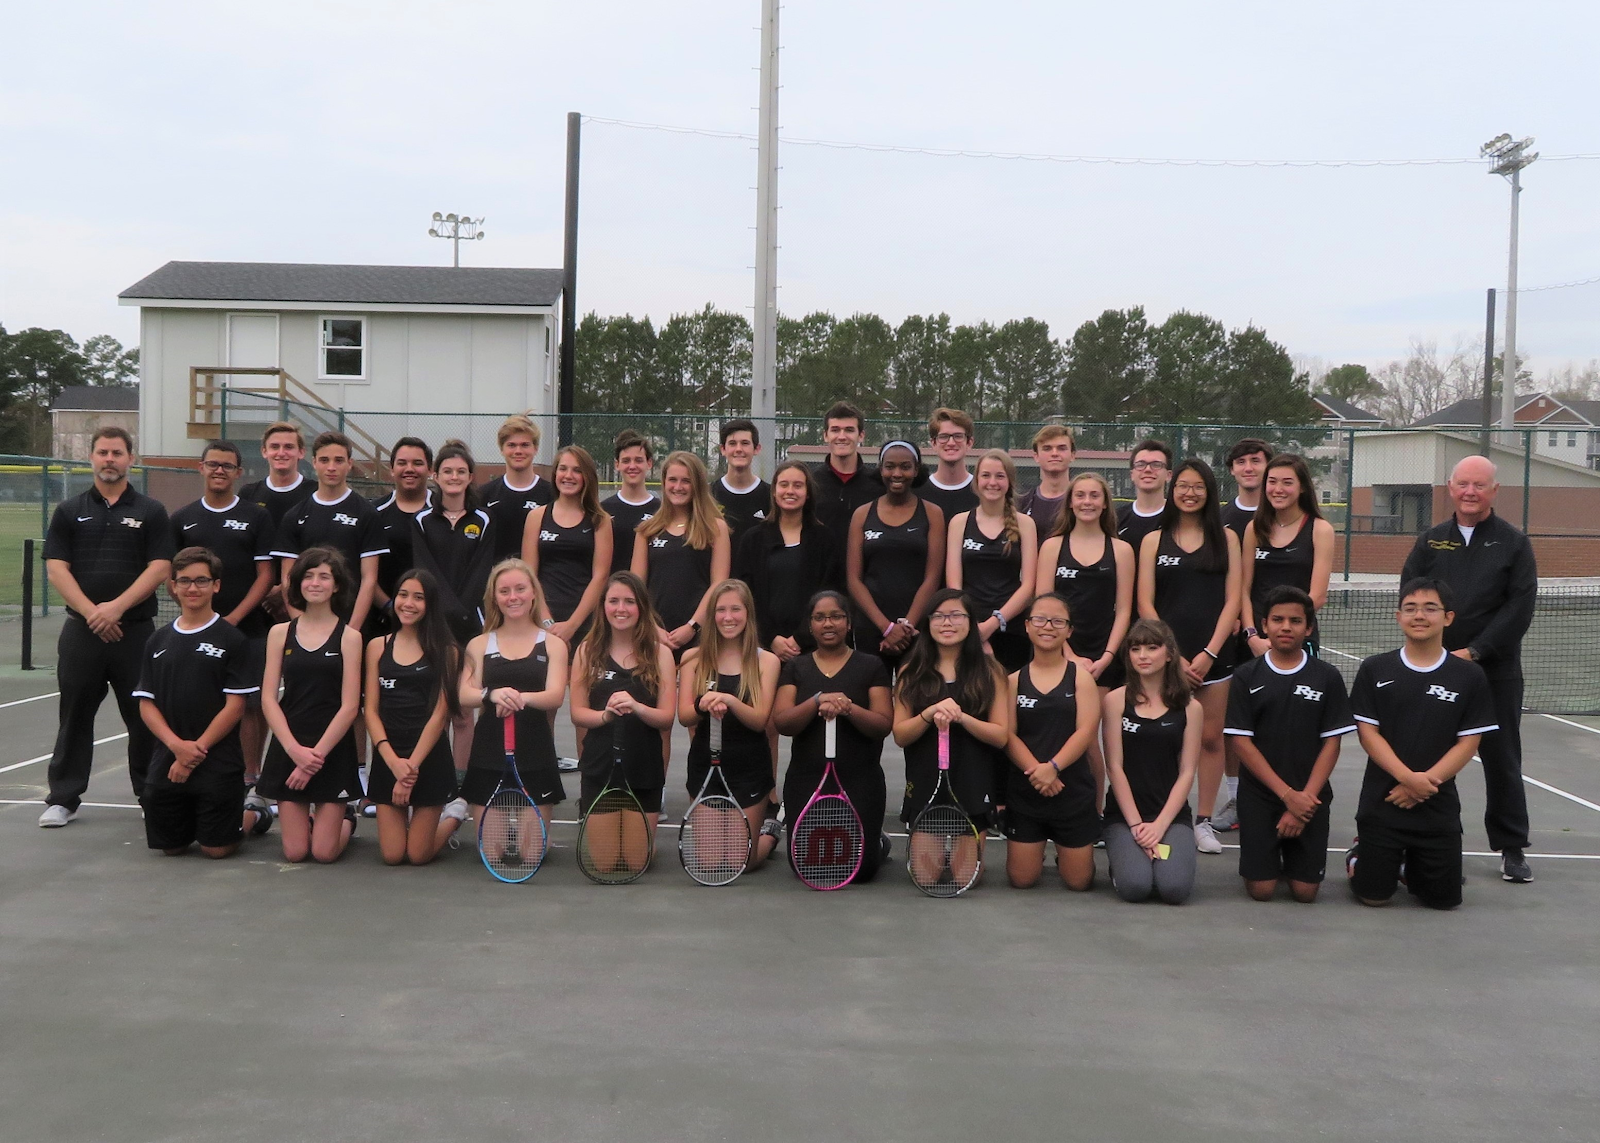 Boys and Girls teams together